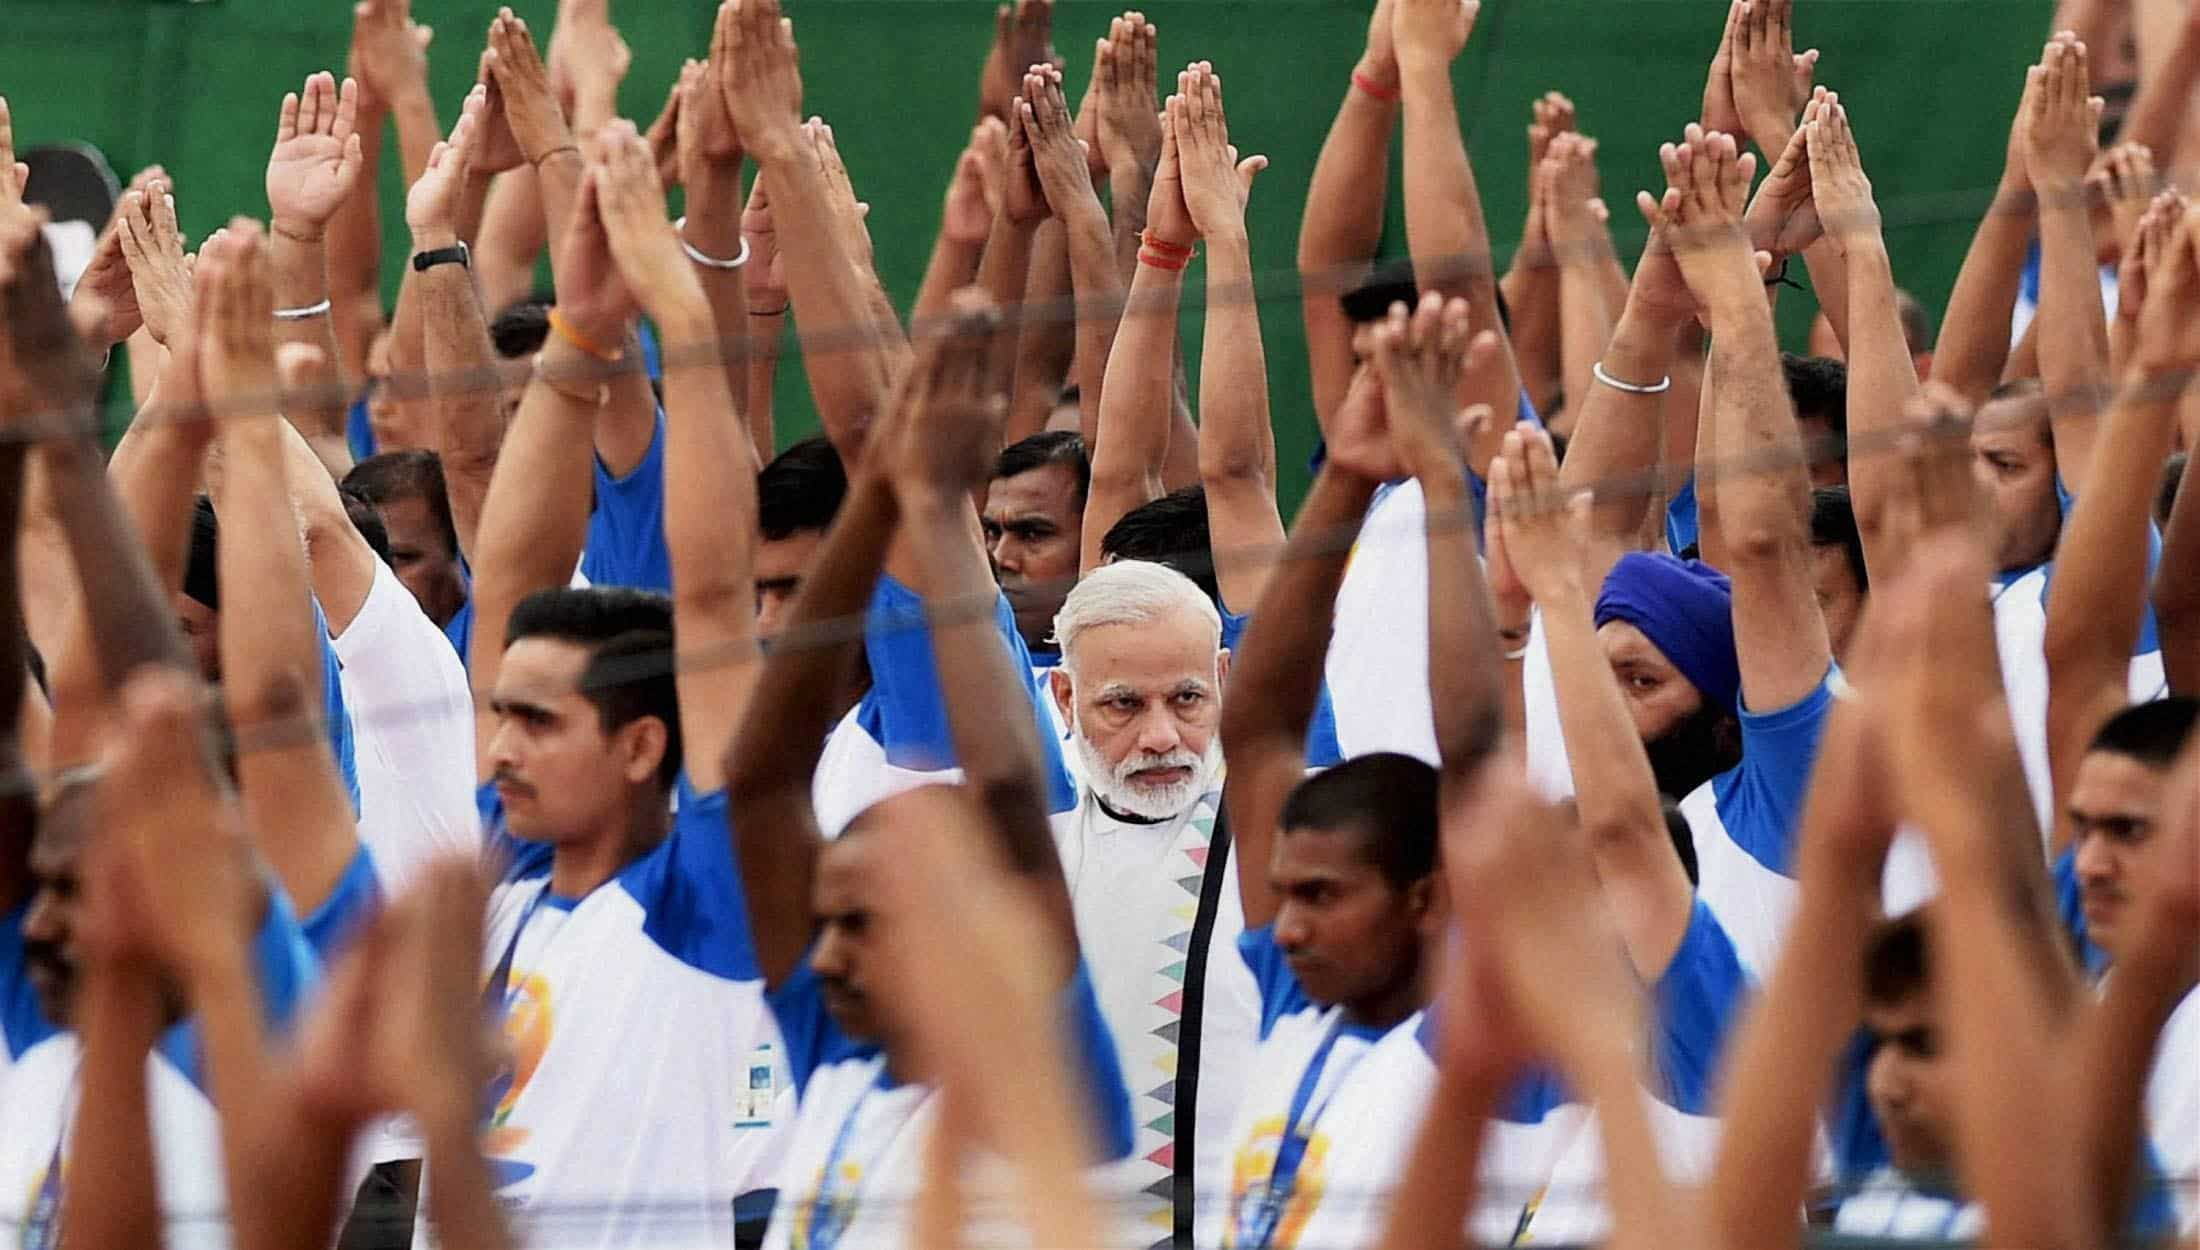 PM Modi spotted among thousand yoga practitioners in Capitol Complex, Chandigarh. PTI